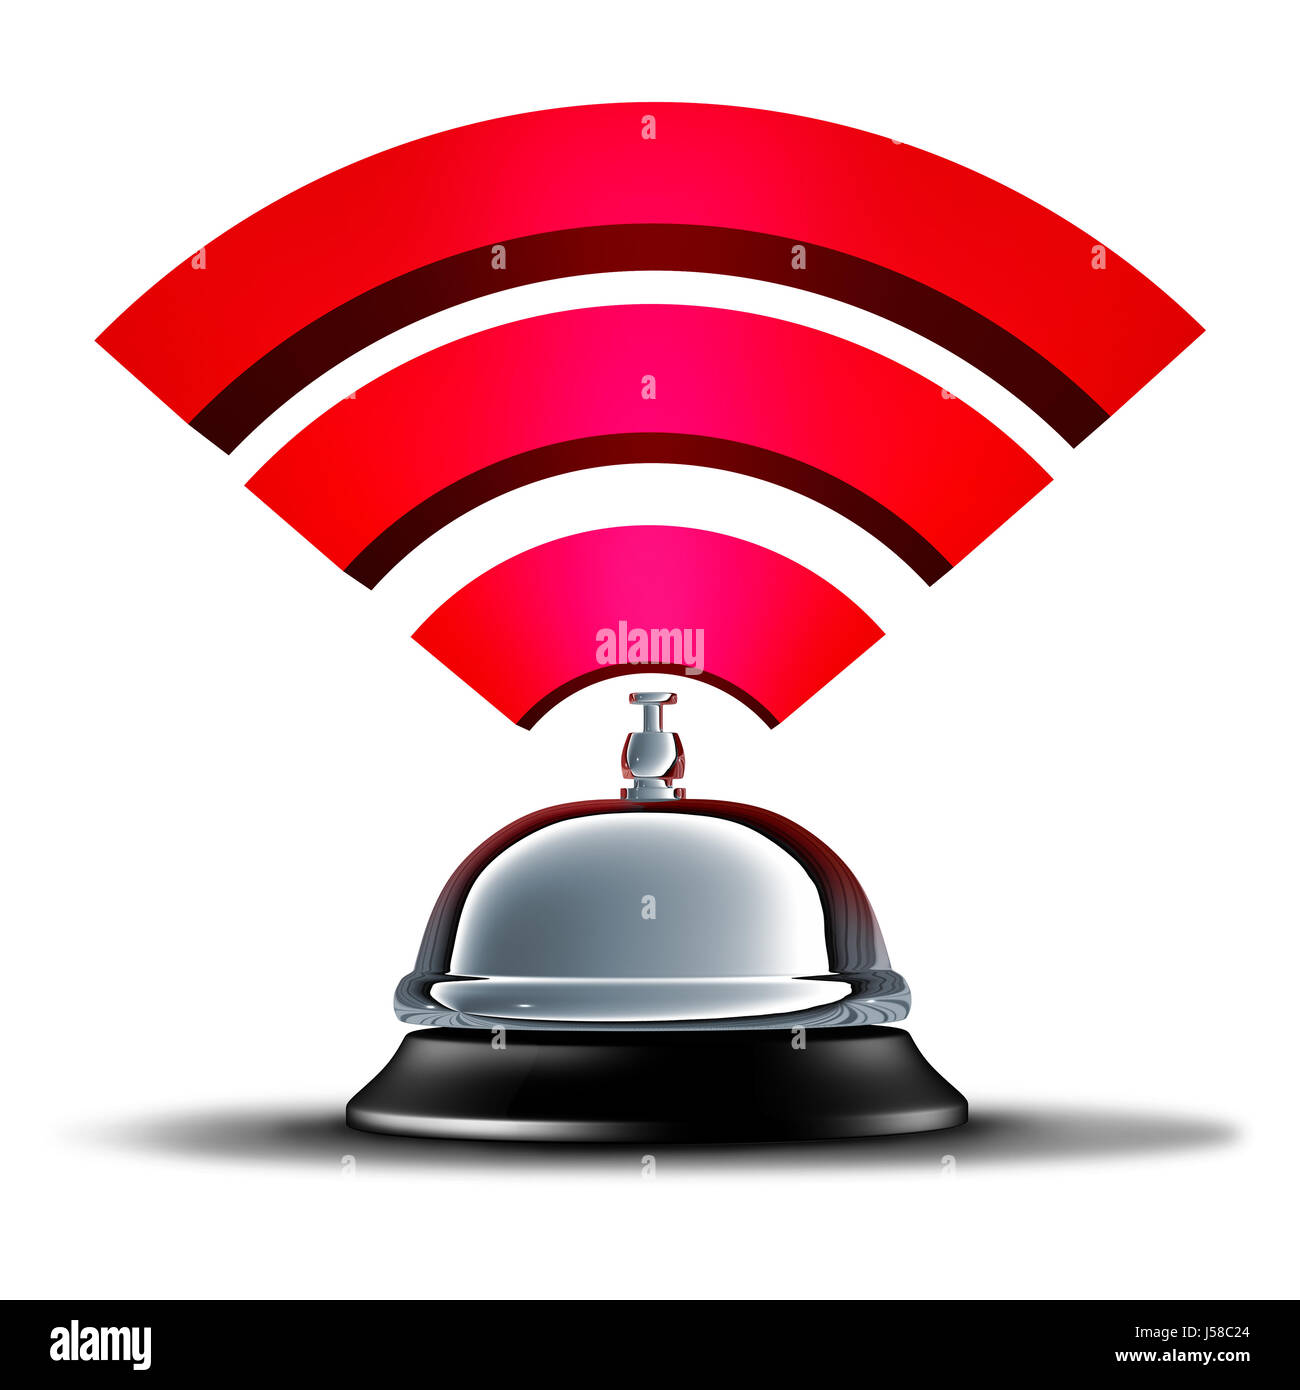 Wifi service or wi fi wireless communication and mobile broadband connection services as an internet wi-fi technology. - Stock Image